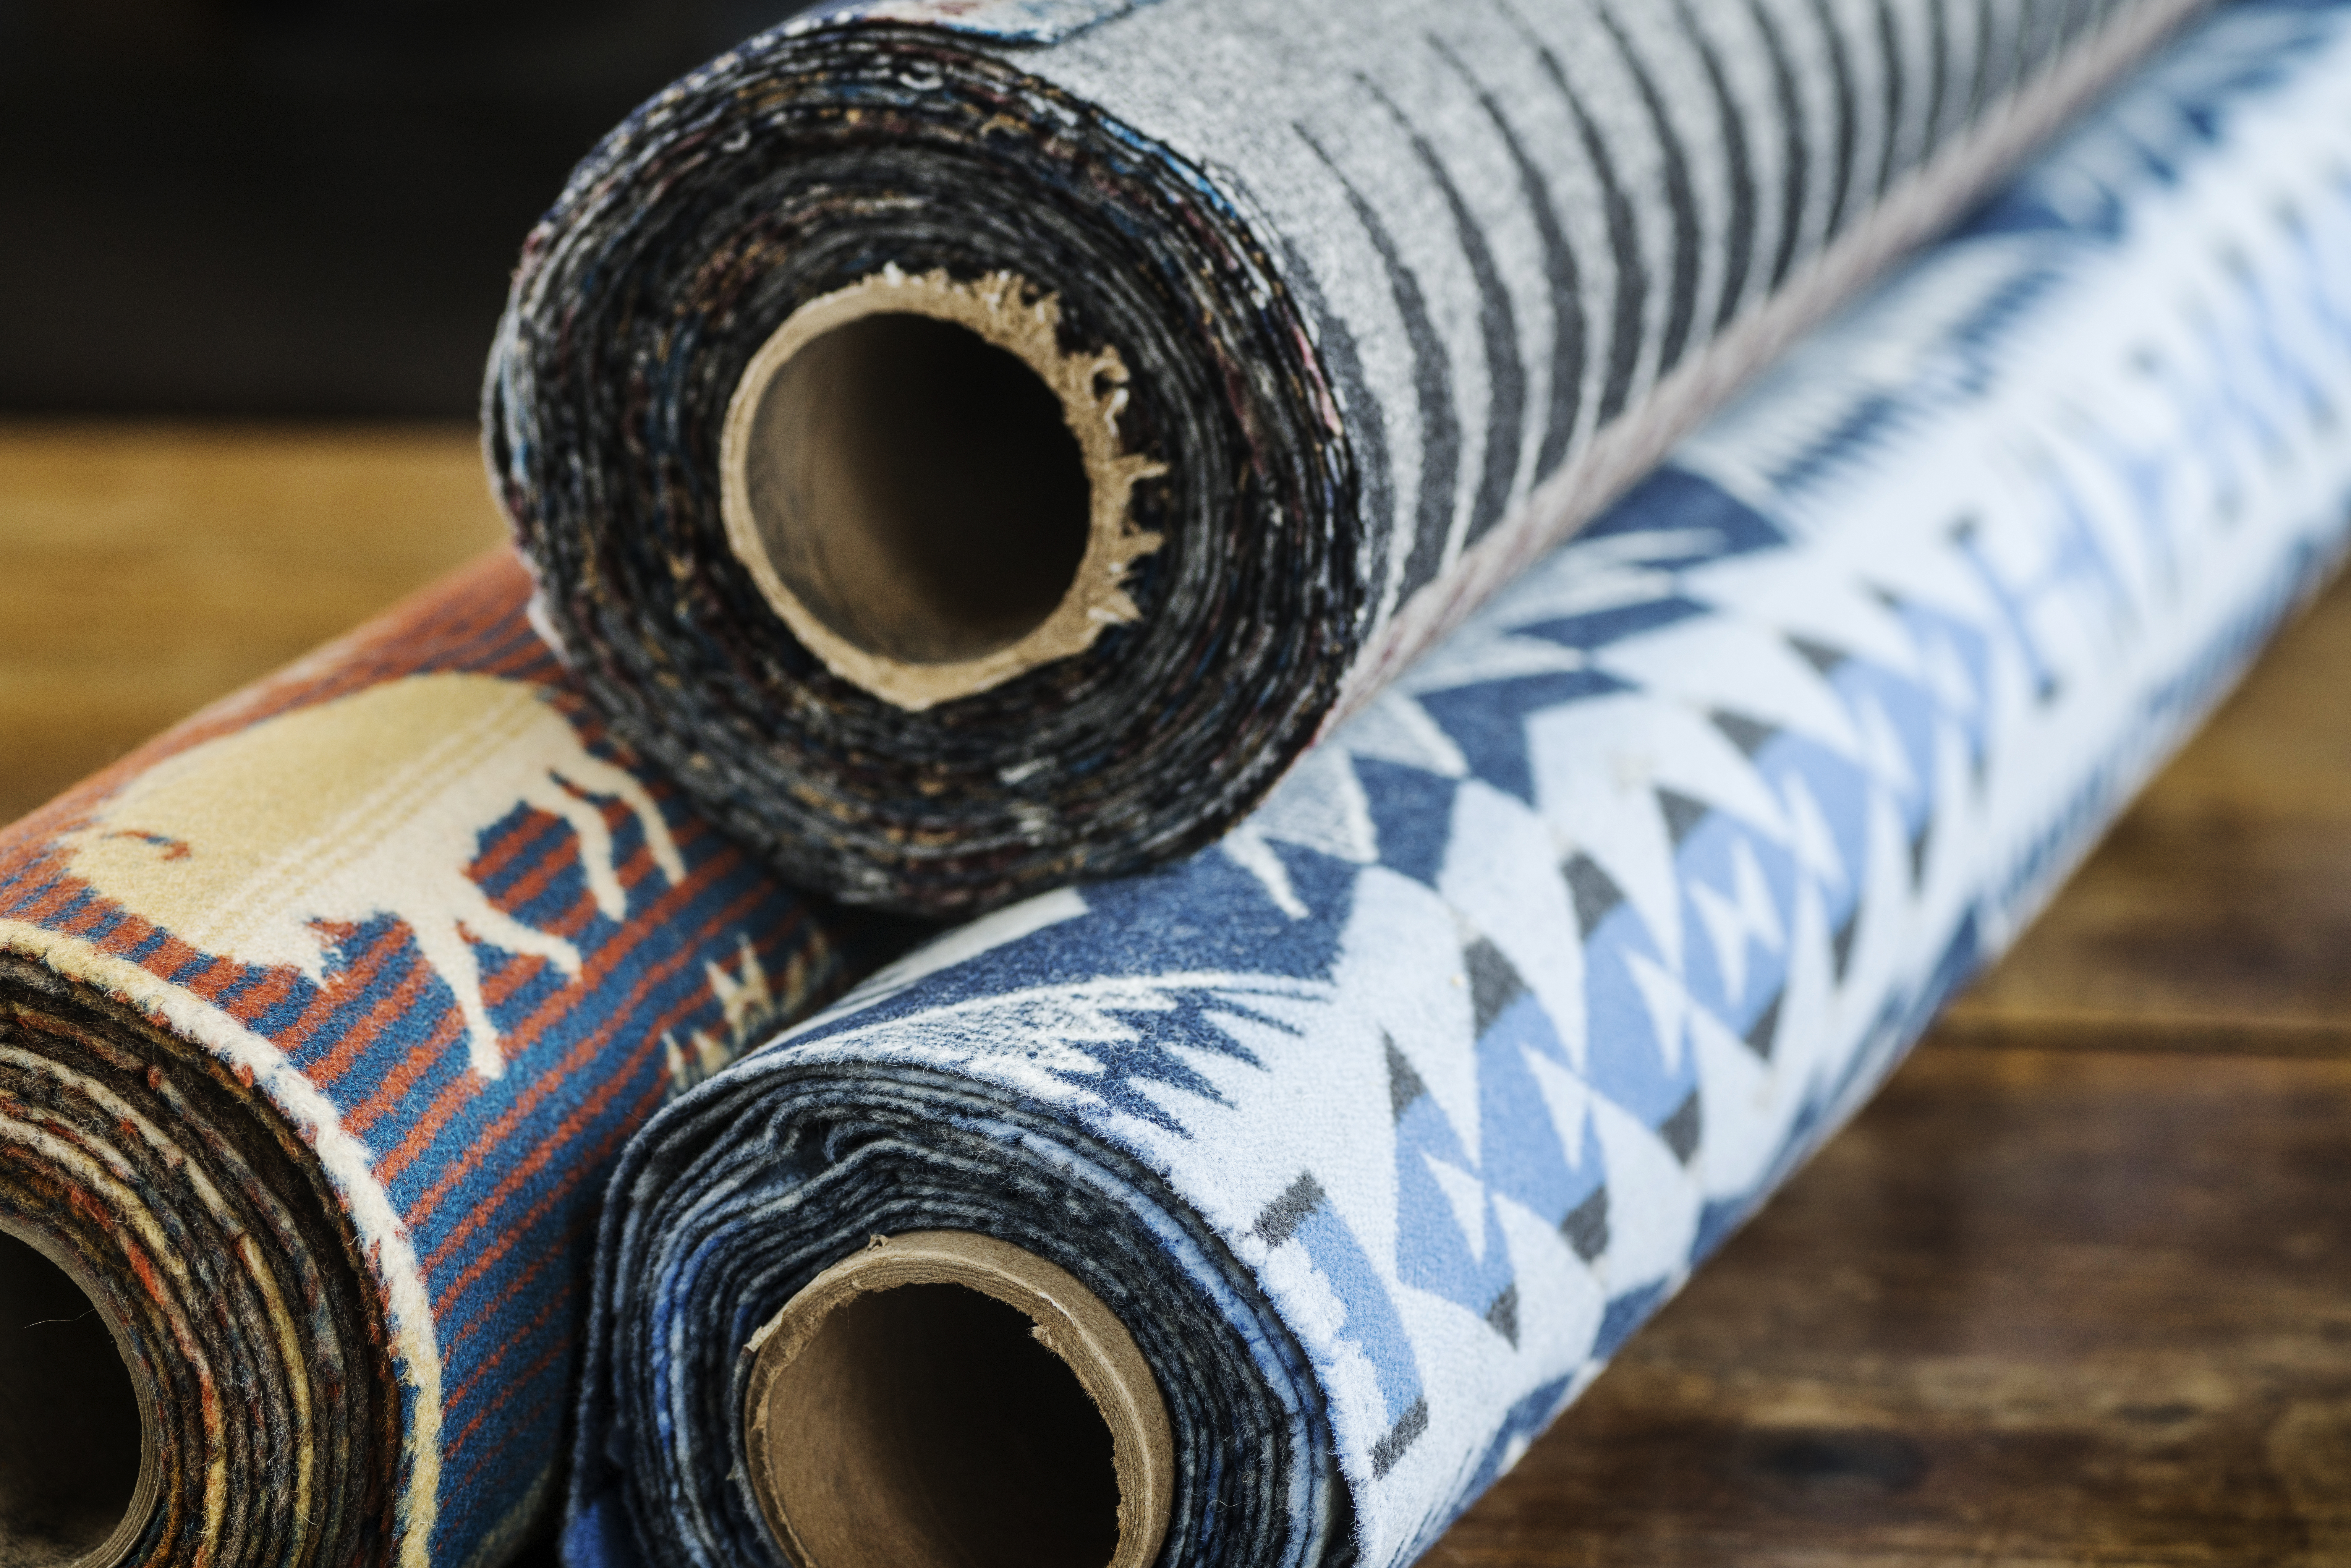 Rolls of Pendleton woolen fabrics in grey and black, shades of blue, and rust, navy cream.